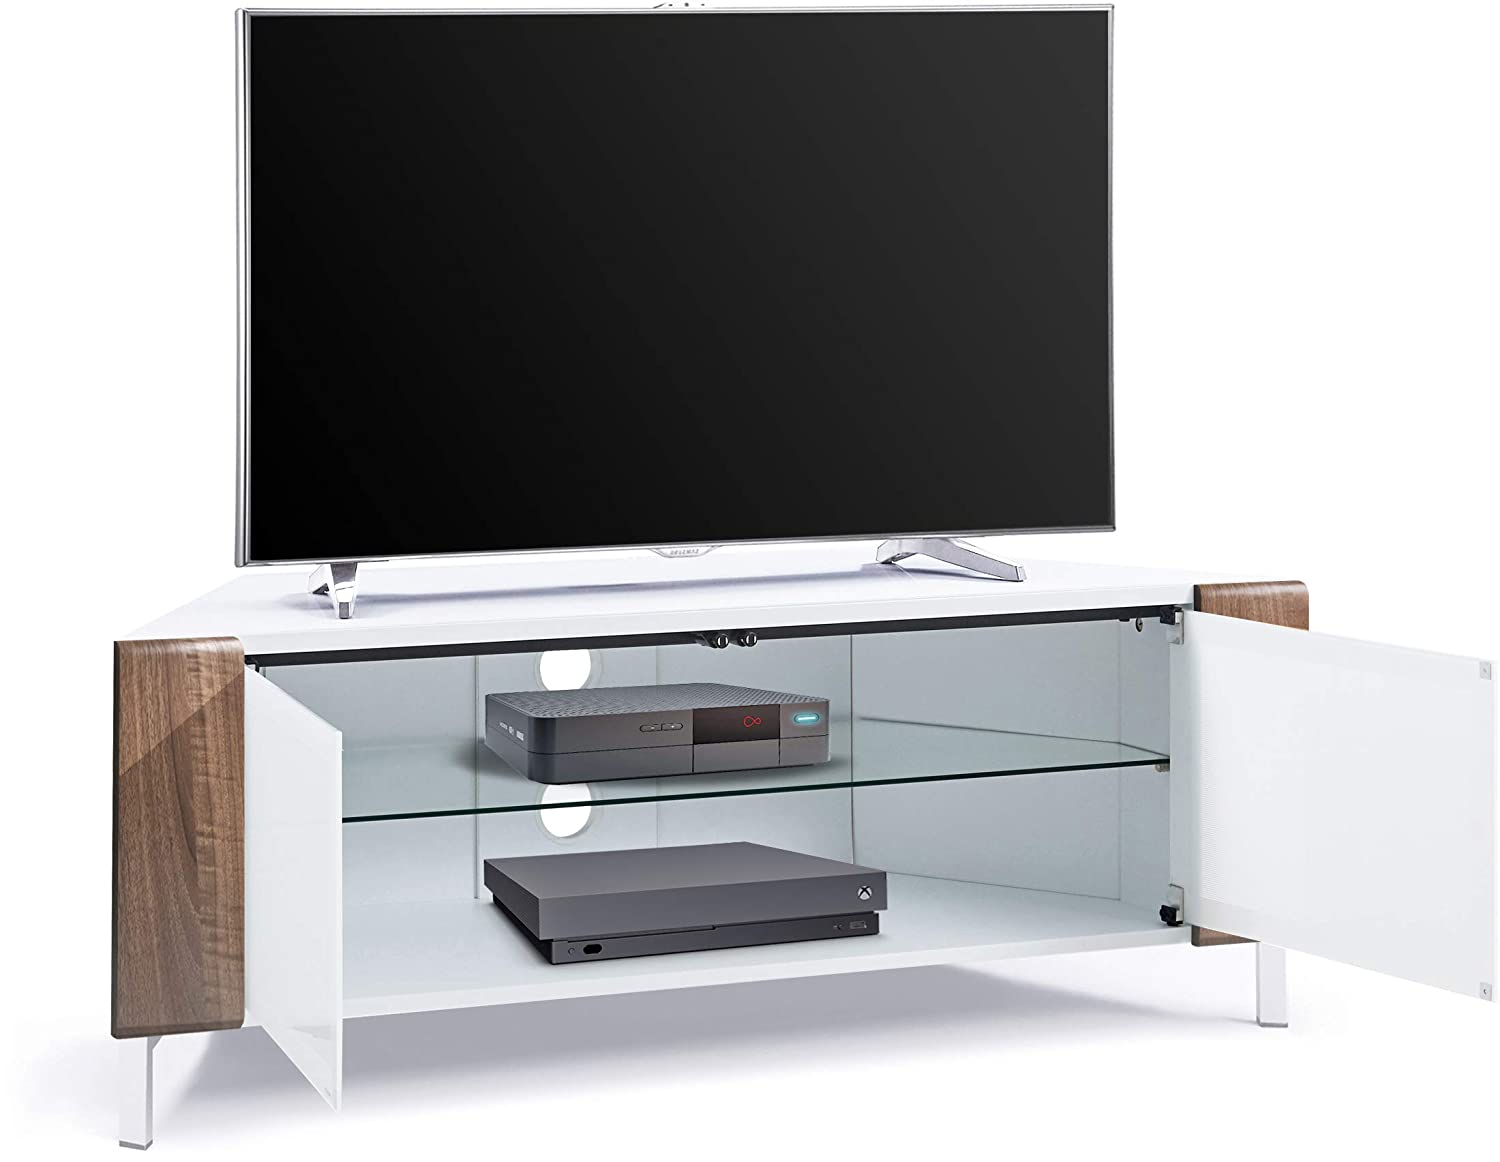 """MDA Designs CORVUS Corner-Friendly Gloss White Contemporary Cabinet with White Profiles White BeamThru Glass Doors Suitable for Flat Screen TVs upto 50/"""""""